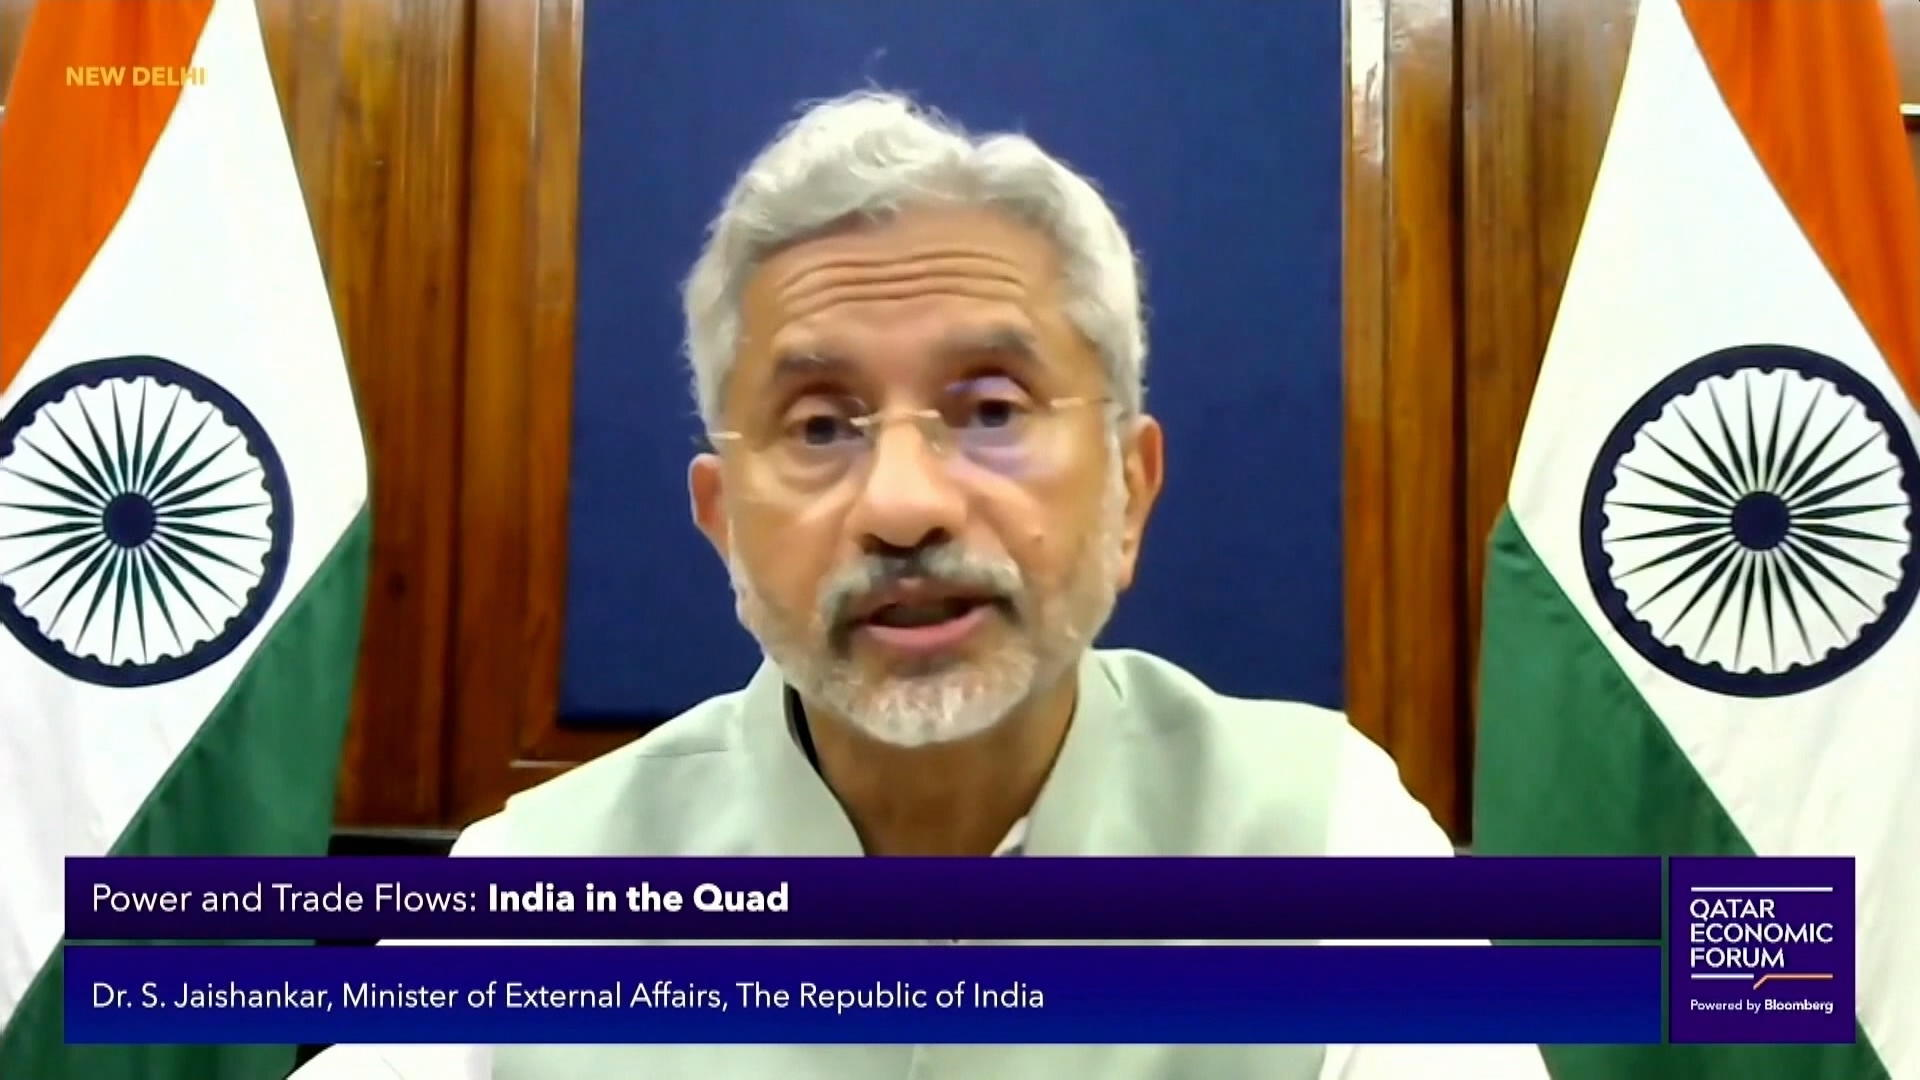 India Minister of External Affairs on Life After Covid